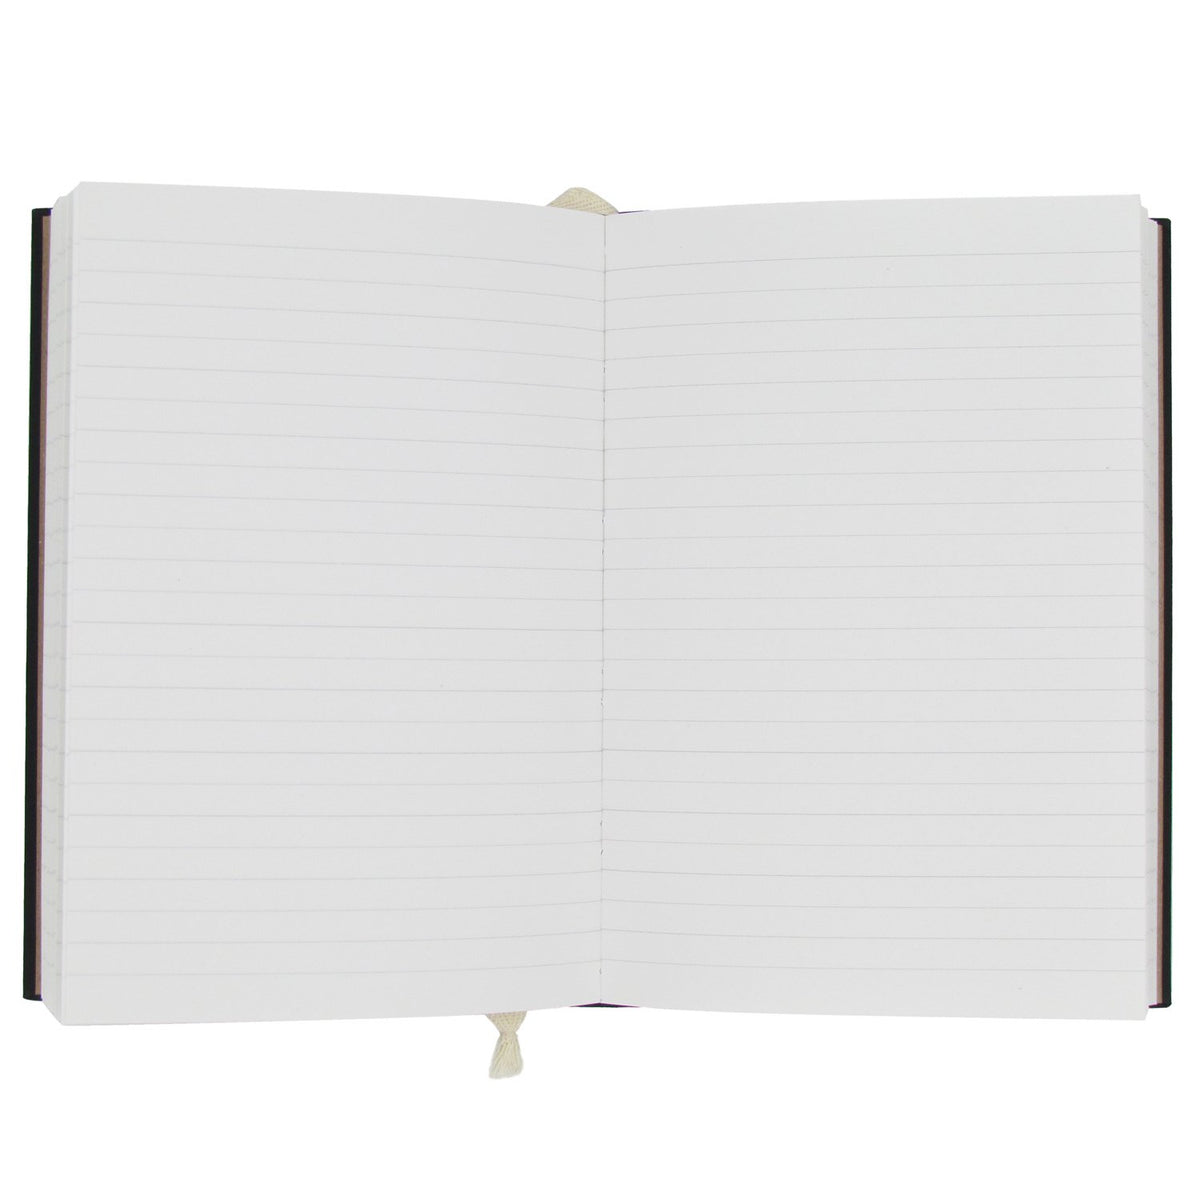 Harmony Eco-Friendly Notebook pages - Black - Made in Britain - BRIT LOCKER